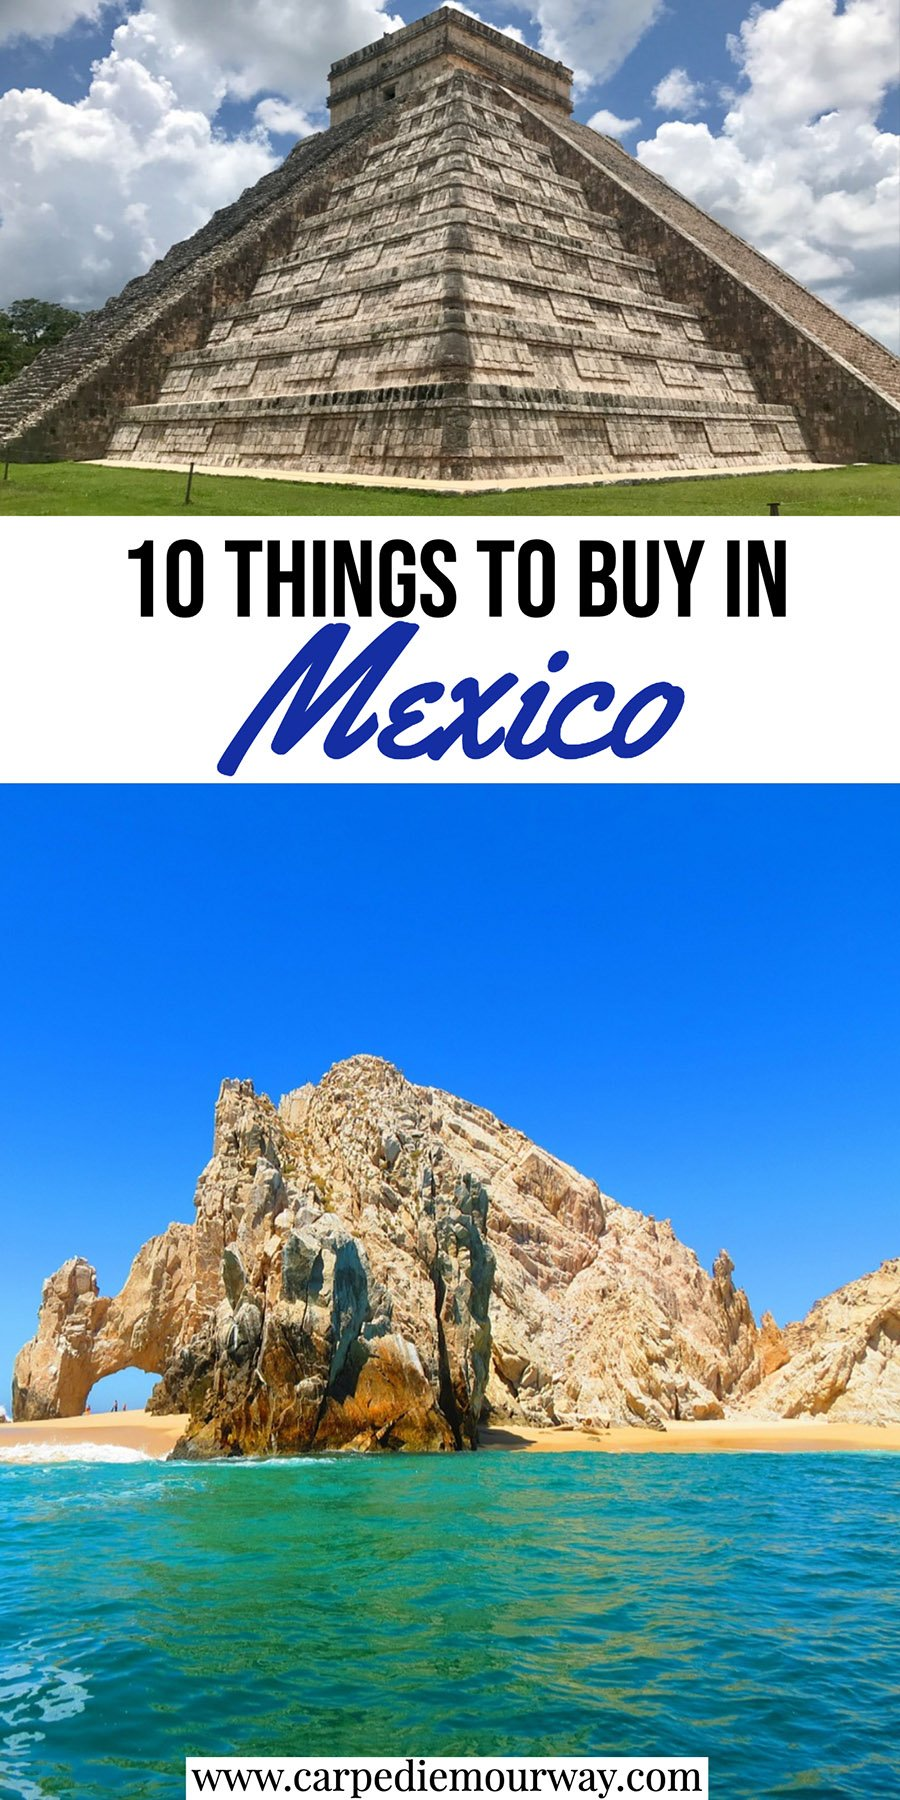 The Best Things to Buy in Mexico